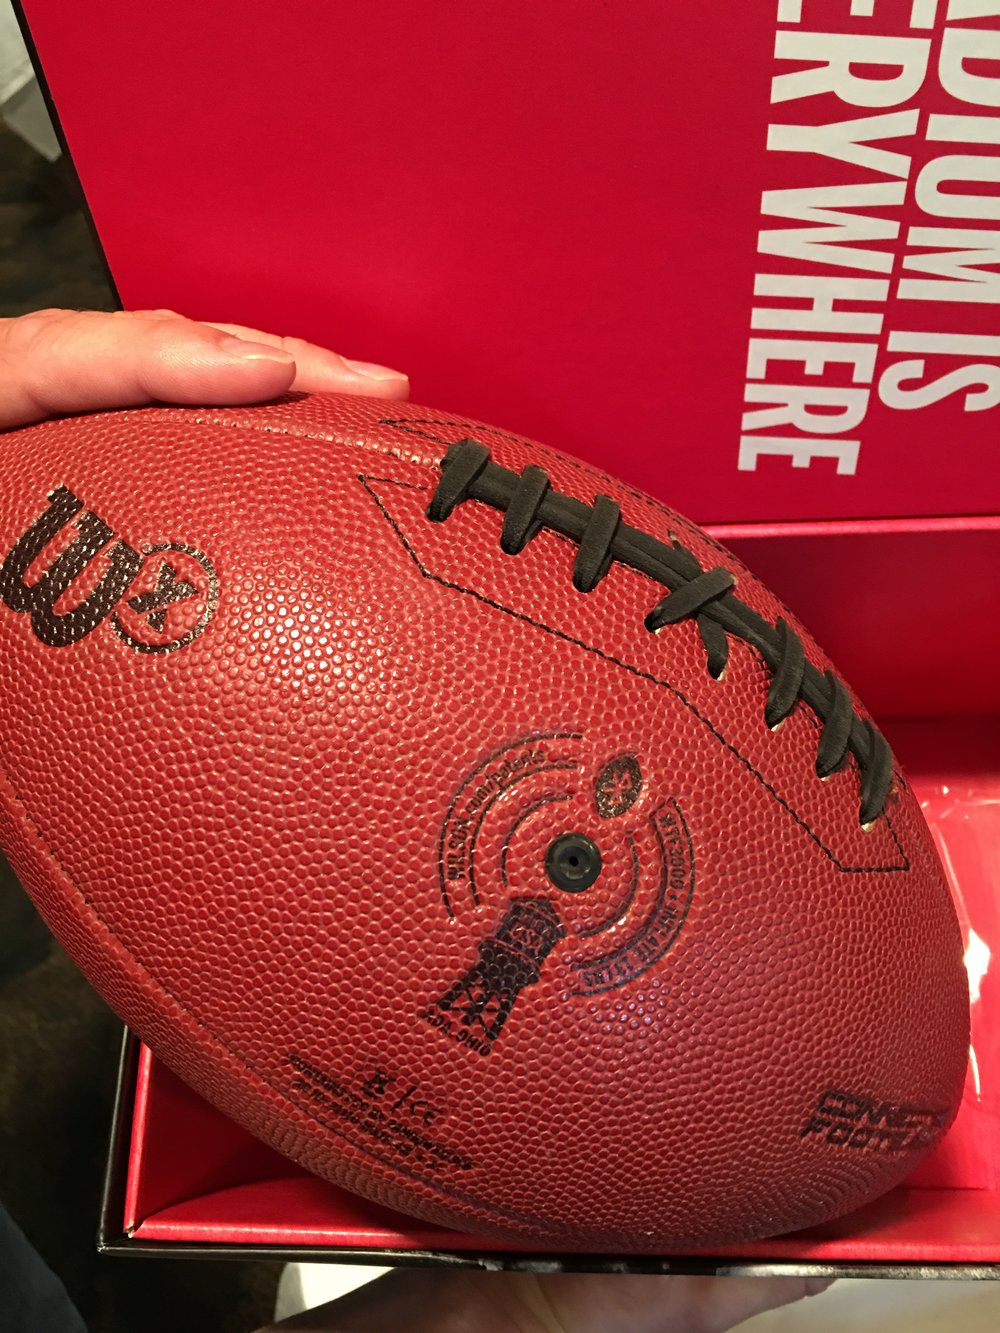 """The Wilson football factory's water tower in Ada, recently repainted with the NFL and Wilson logos, is embossed on Wilson's new """"connected"""" football."""